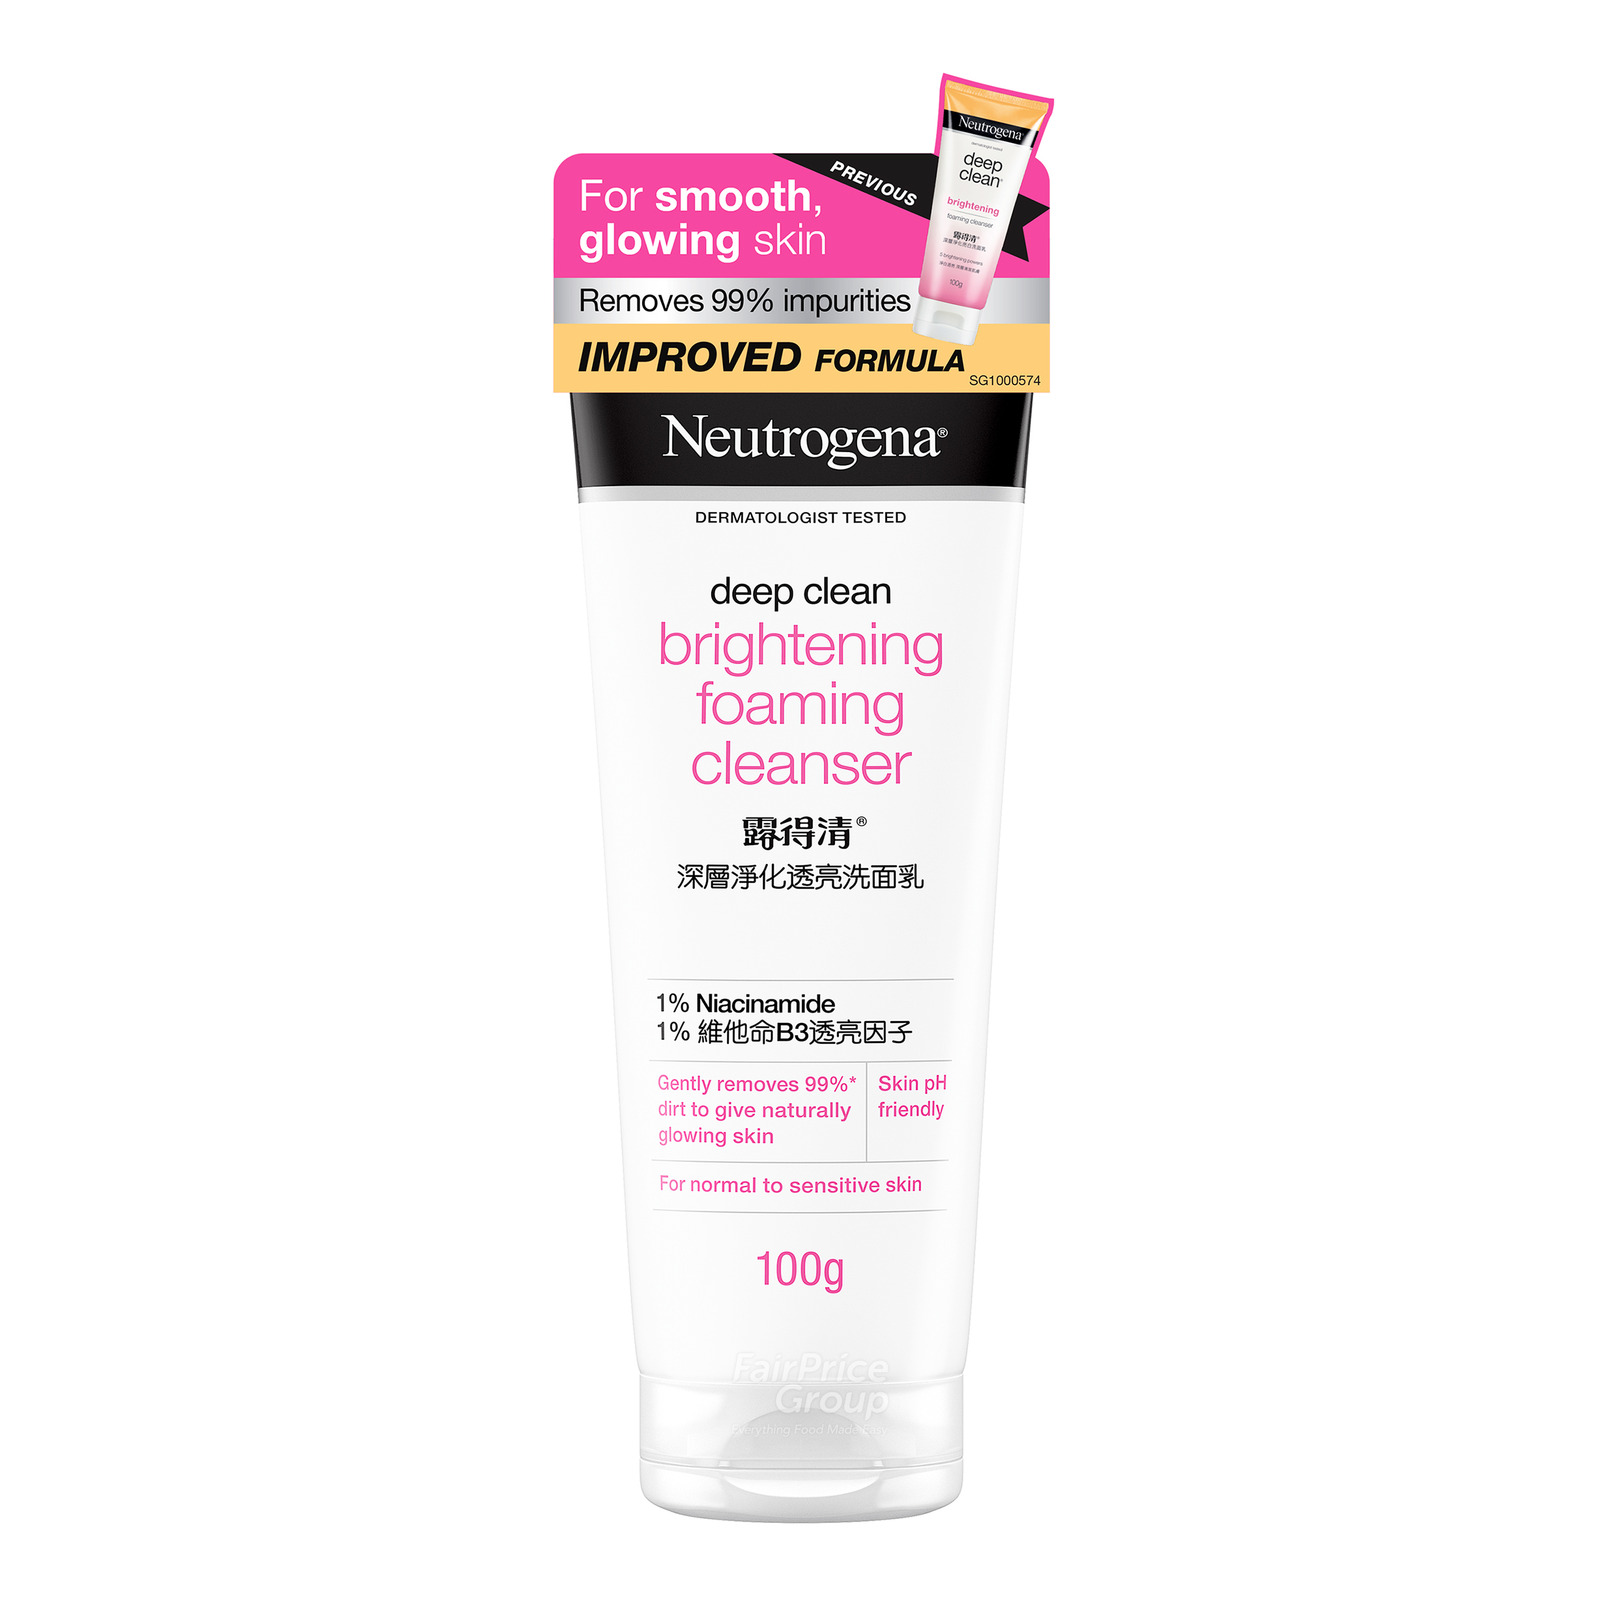 Neutrogena Deep Clean Brightening Foaming Cleanser, 100g